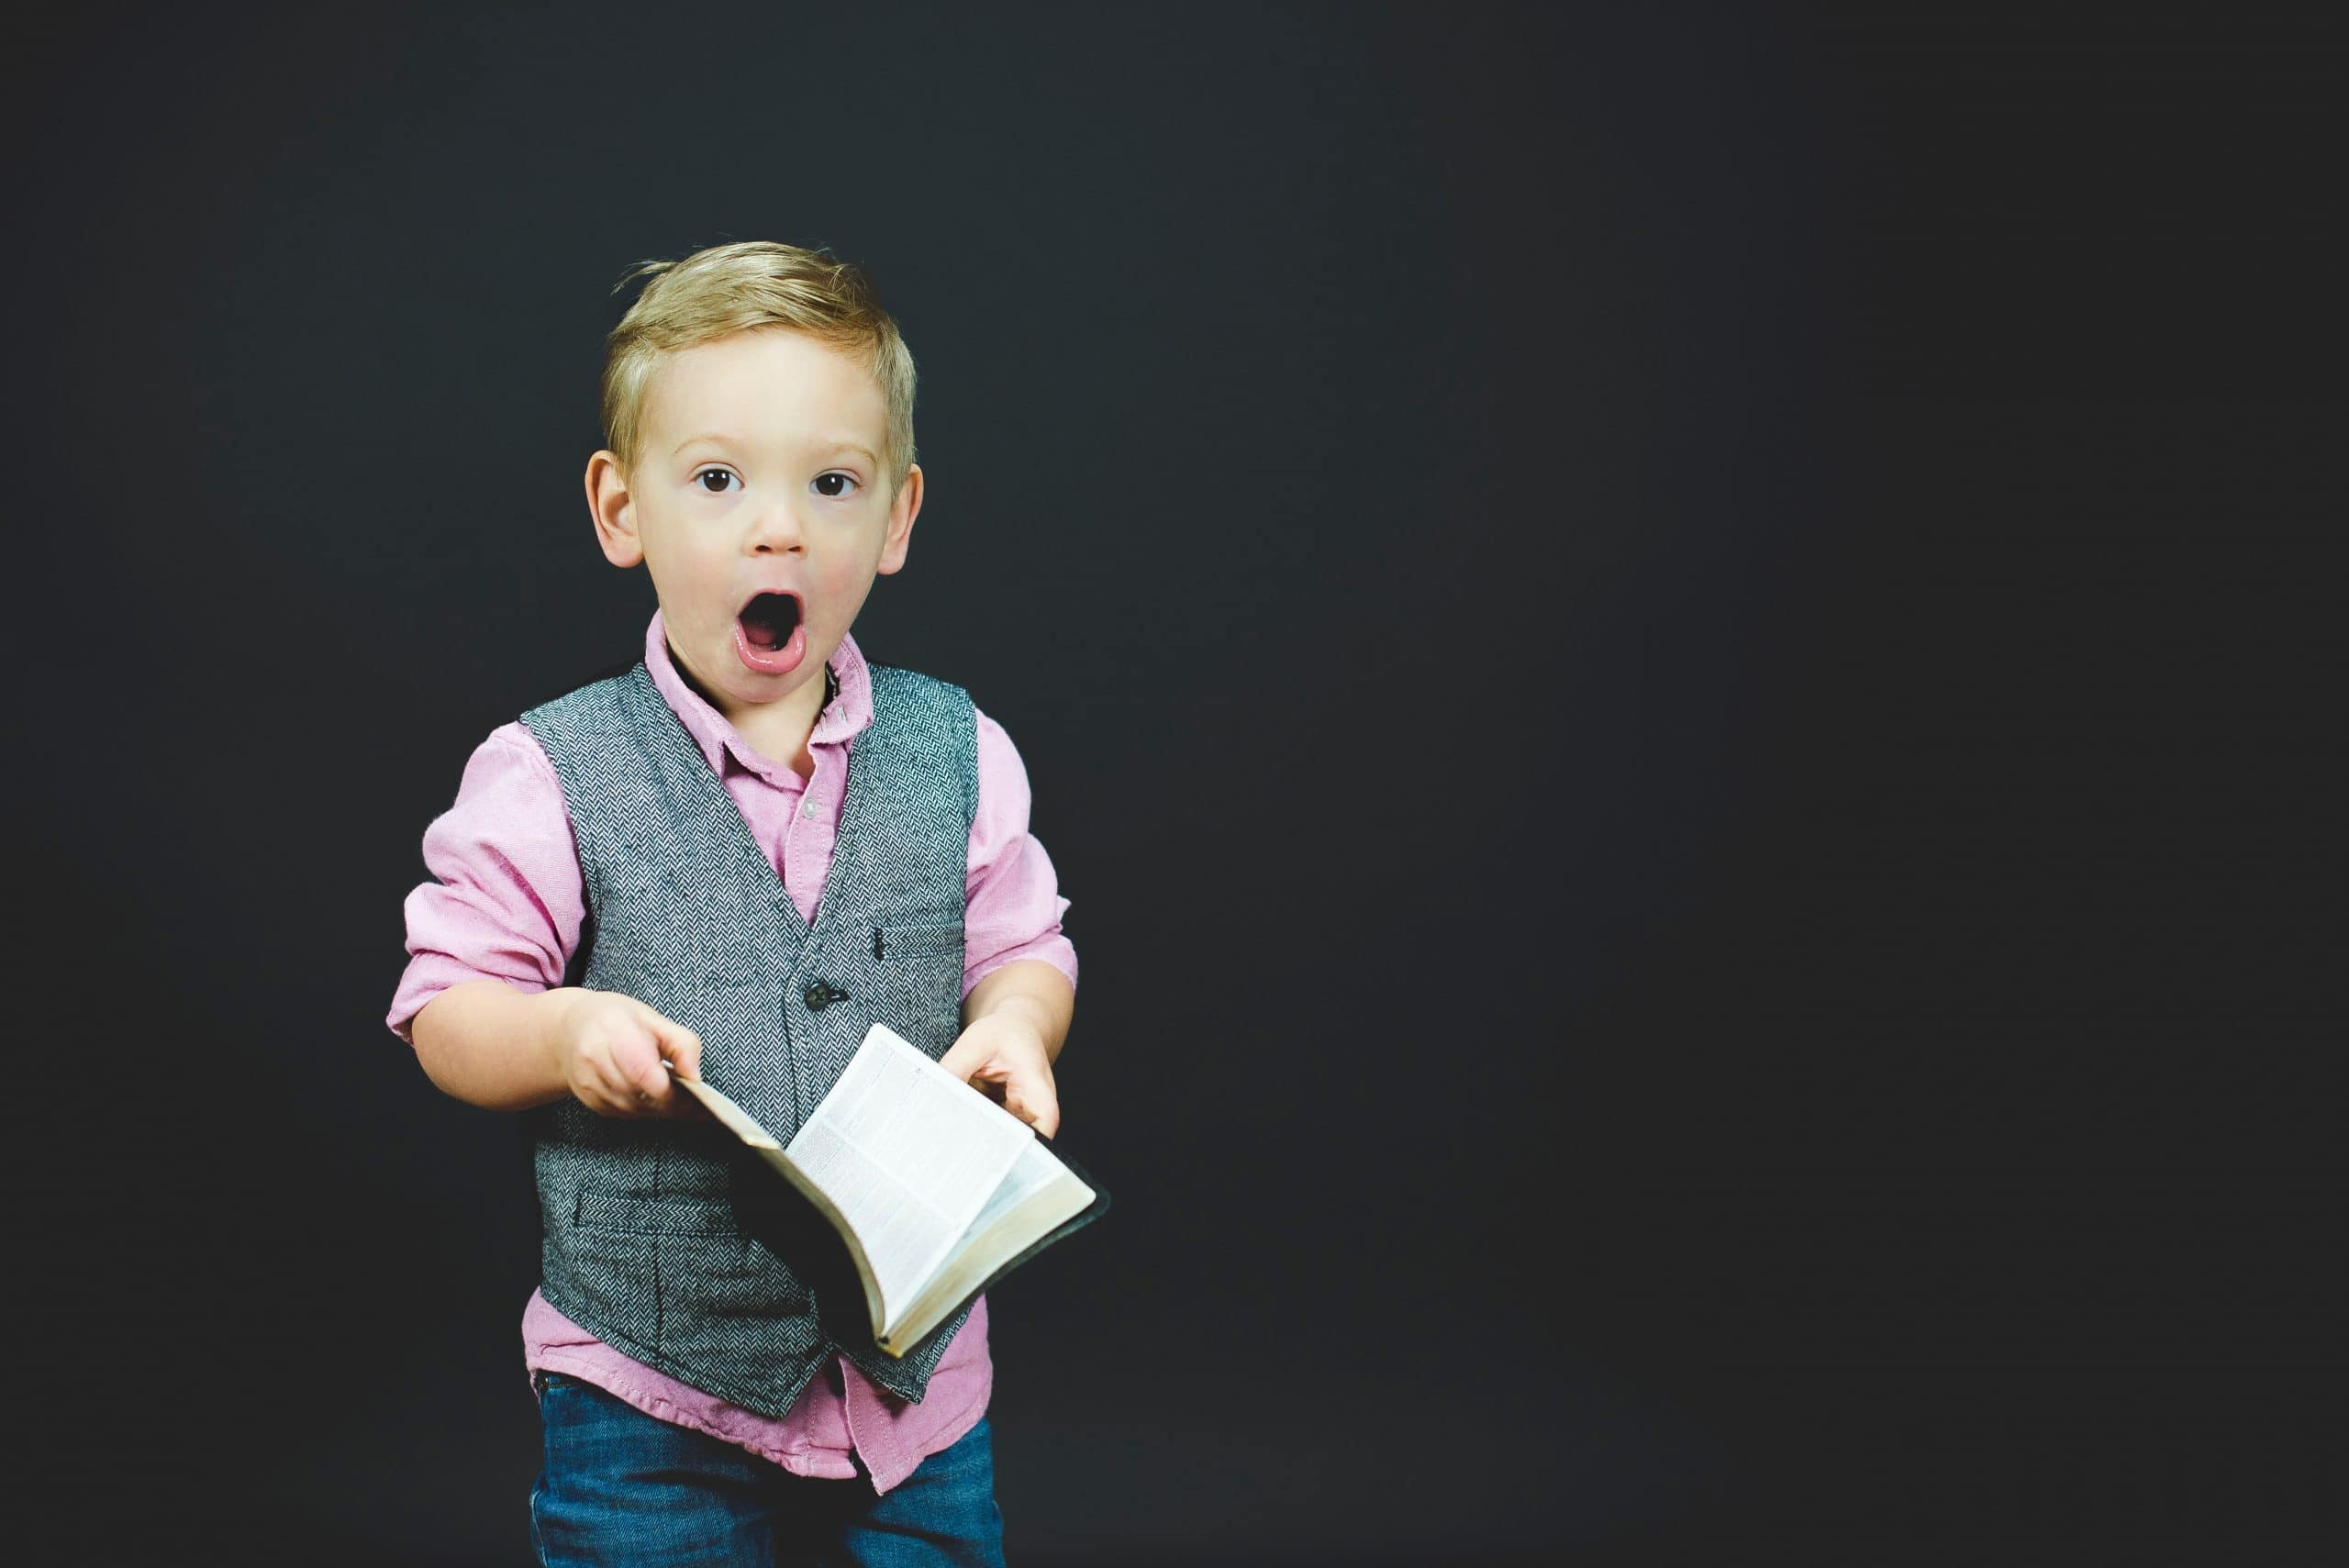 Shocked child holding Bible - photo by Ben White